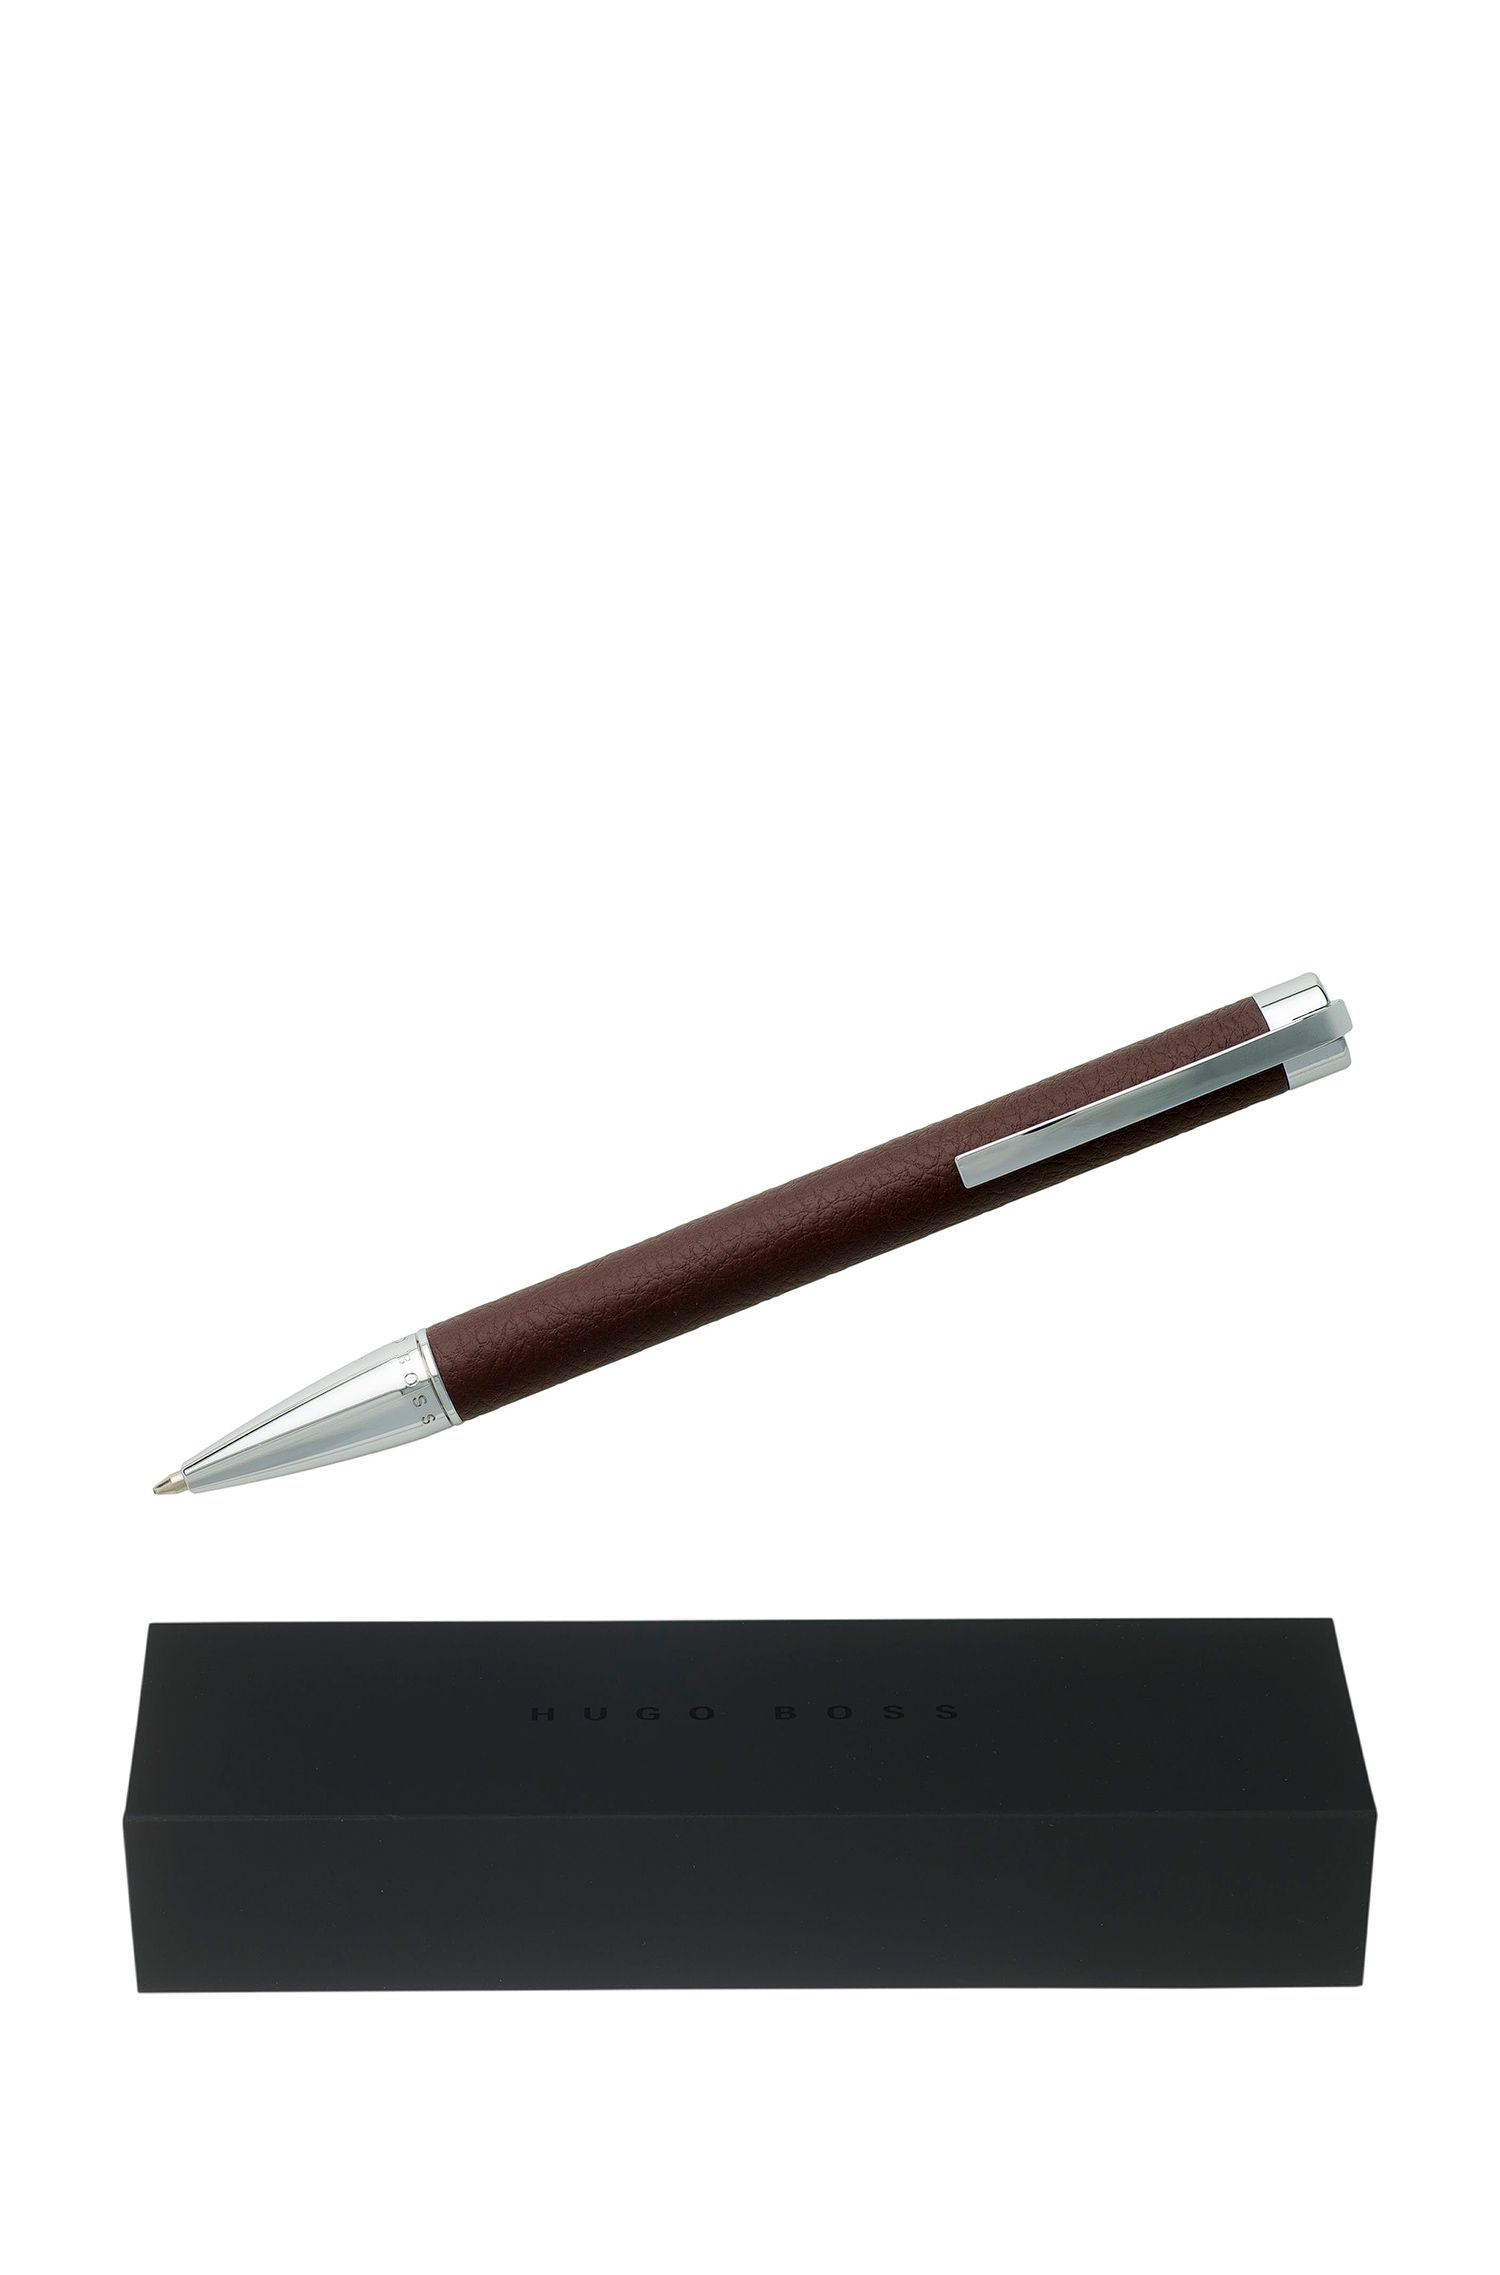 Ballpoint pen in burgundy faux leather